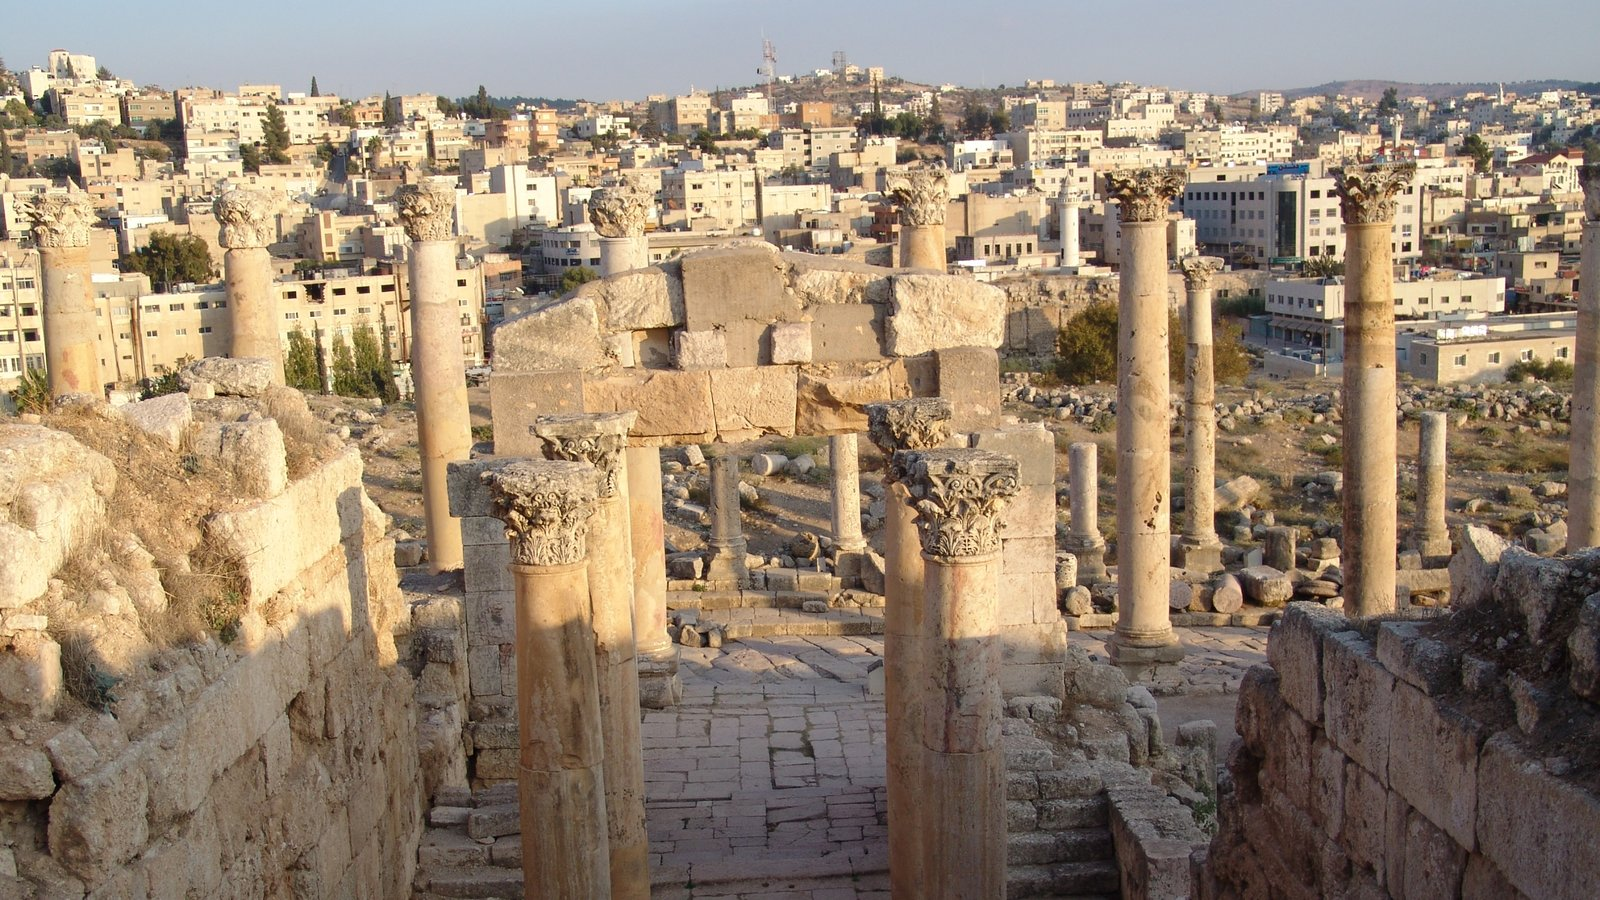 Jerash featuring building ruins, heritage elements and a city